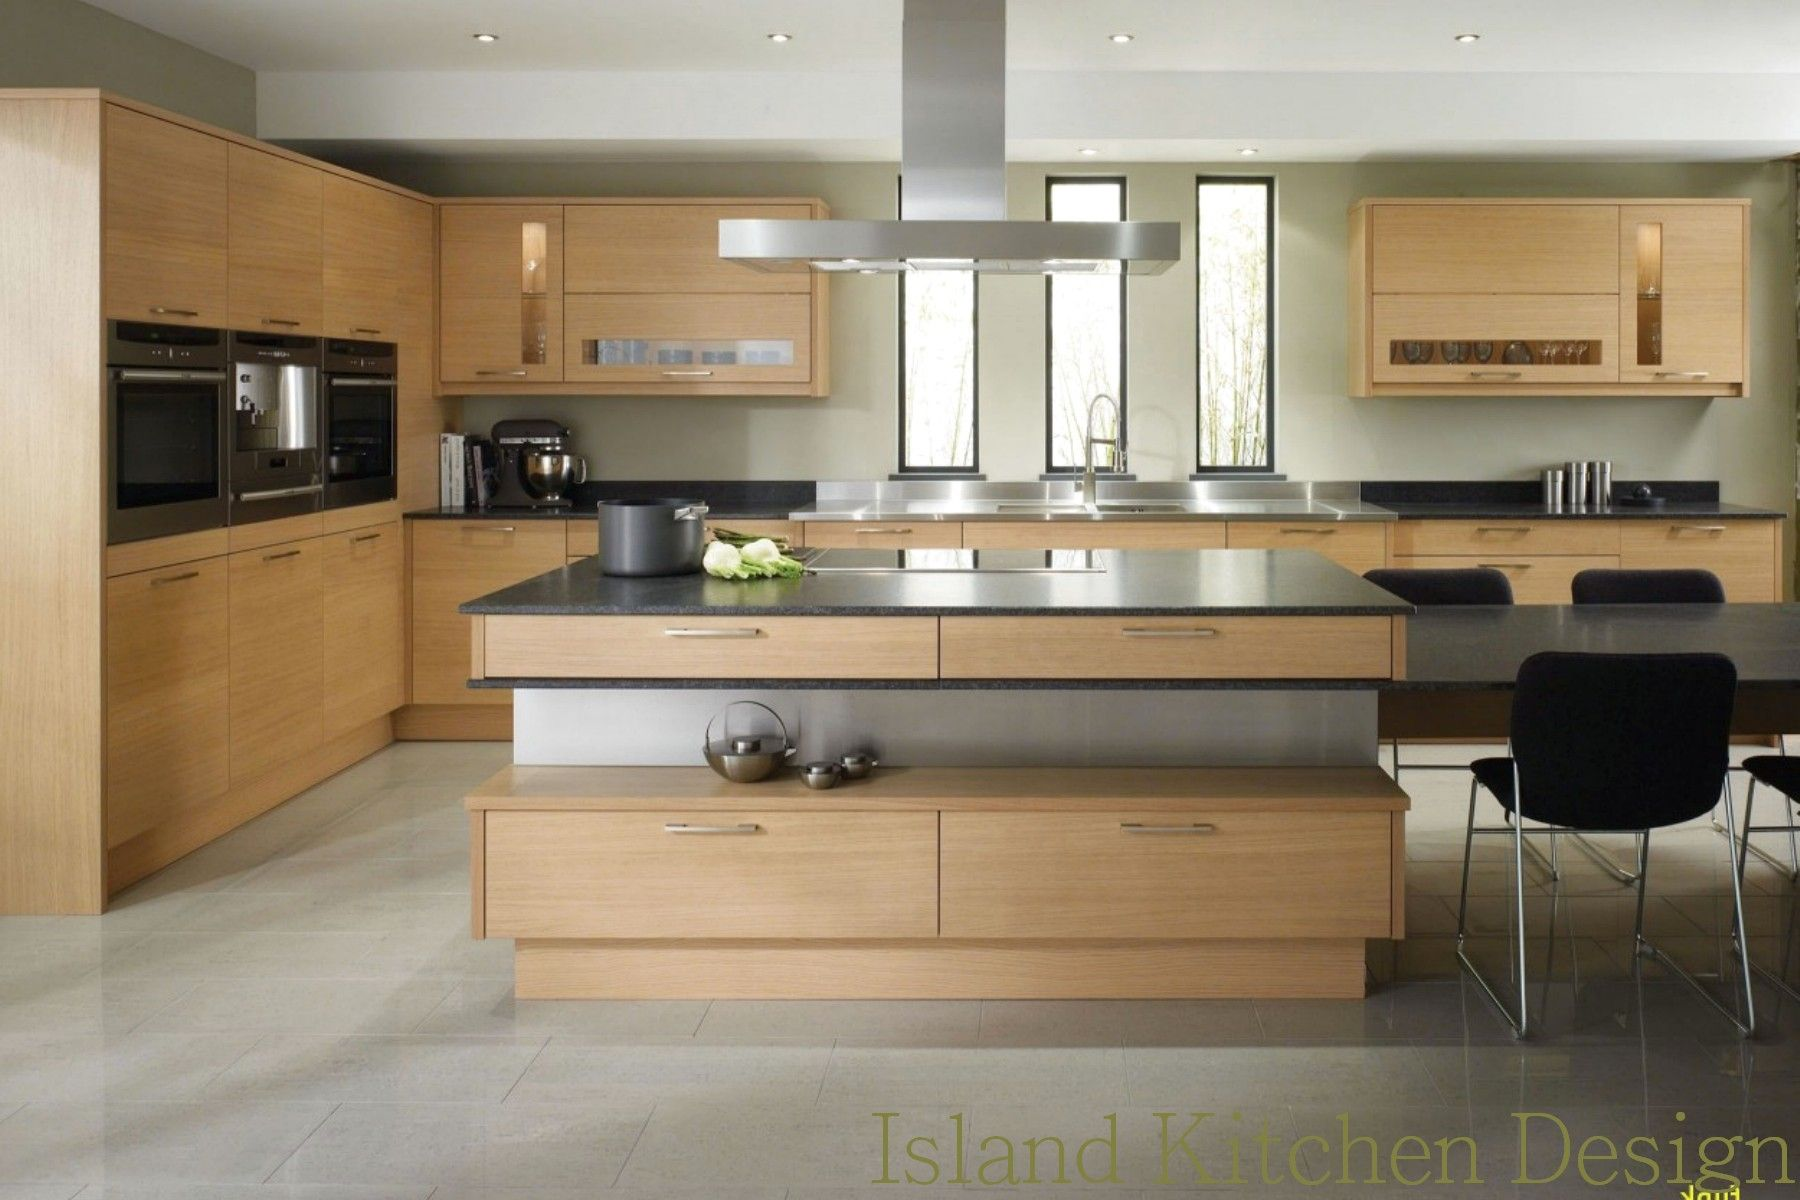 Island Kitchen Design Cake Pans Cookware Kitchen Canisters Jars ...